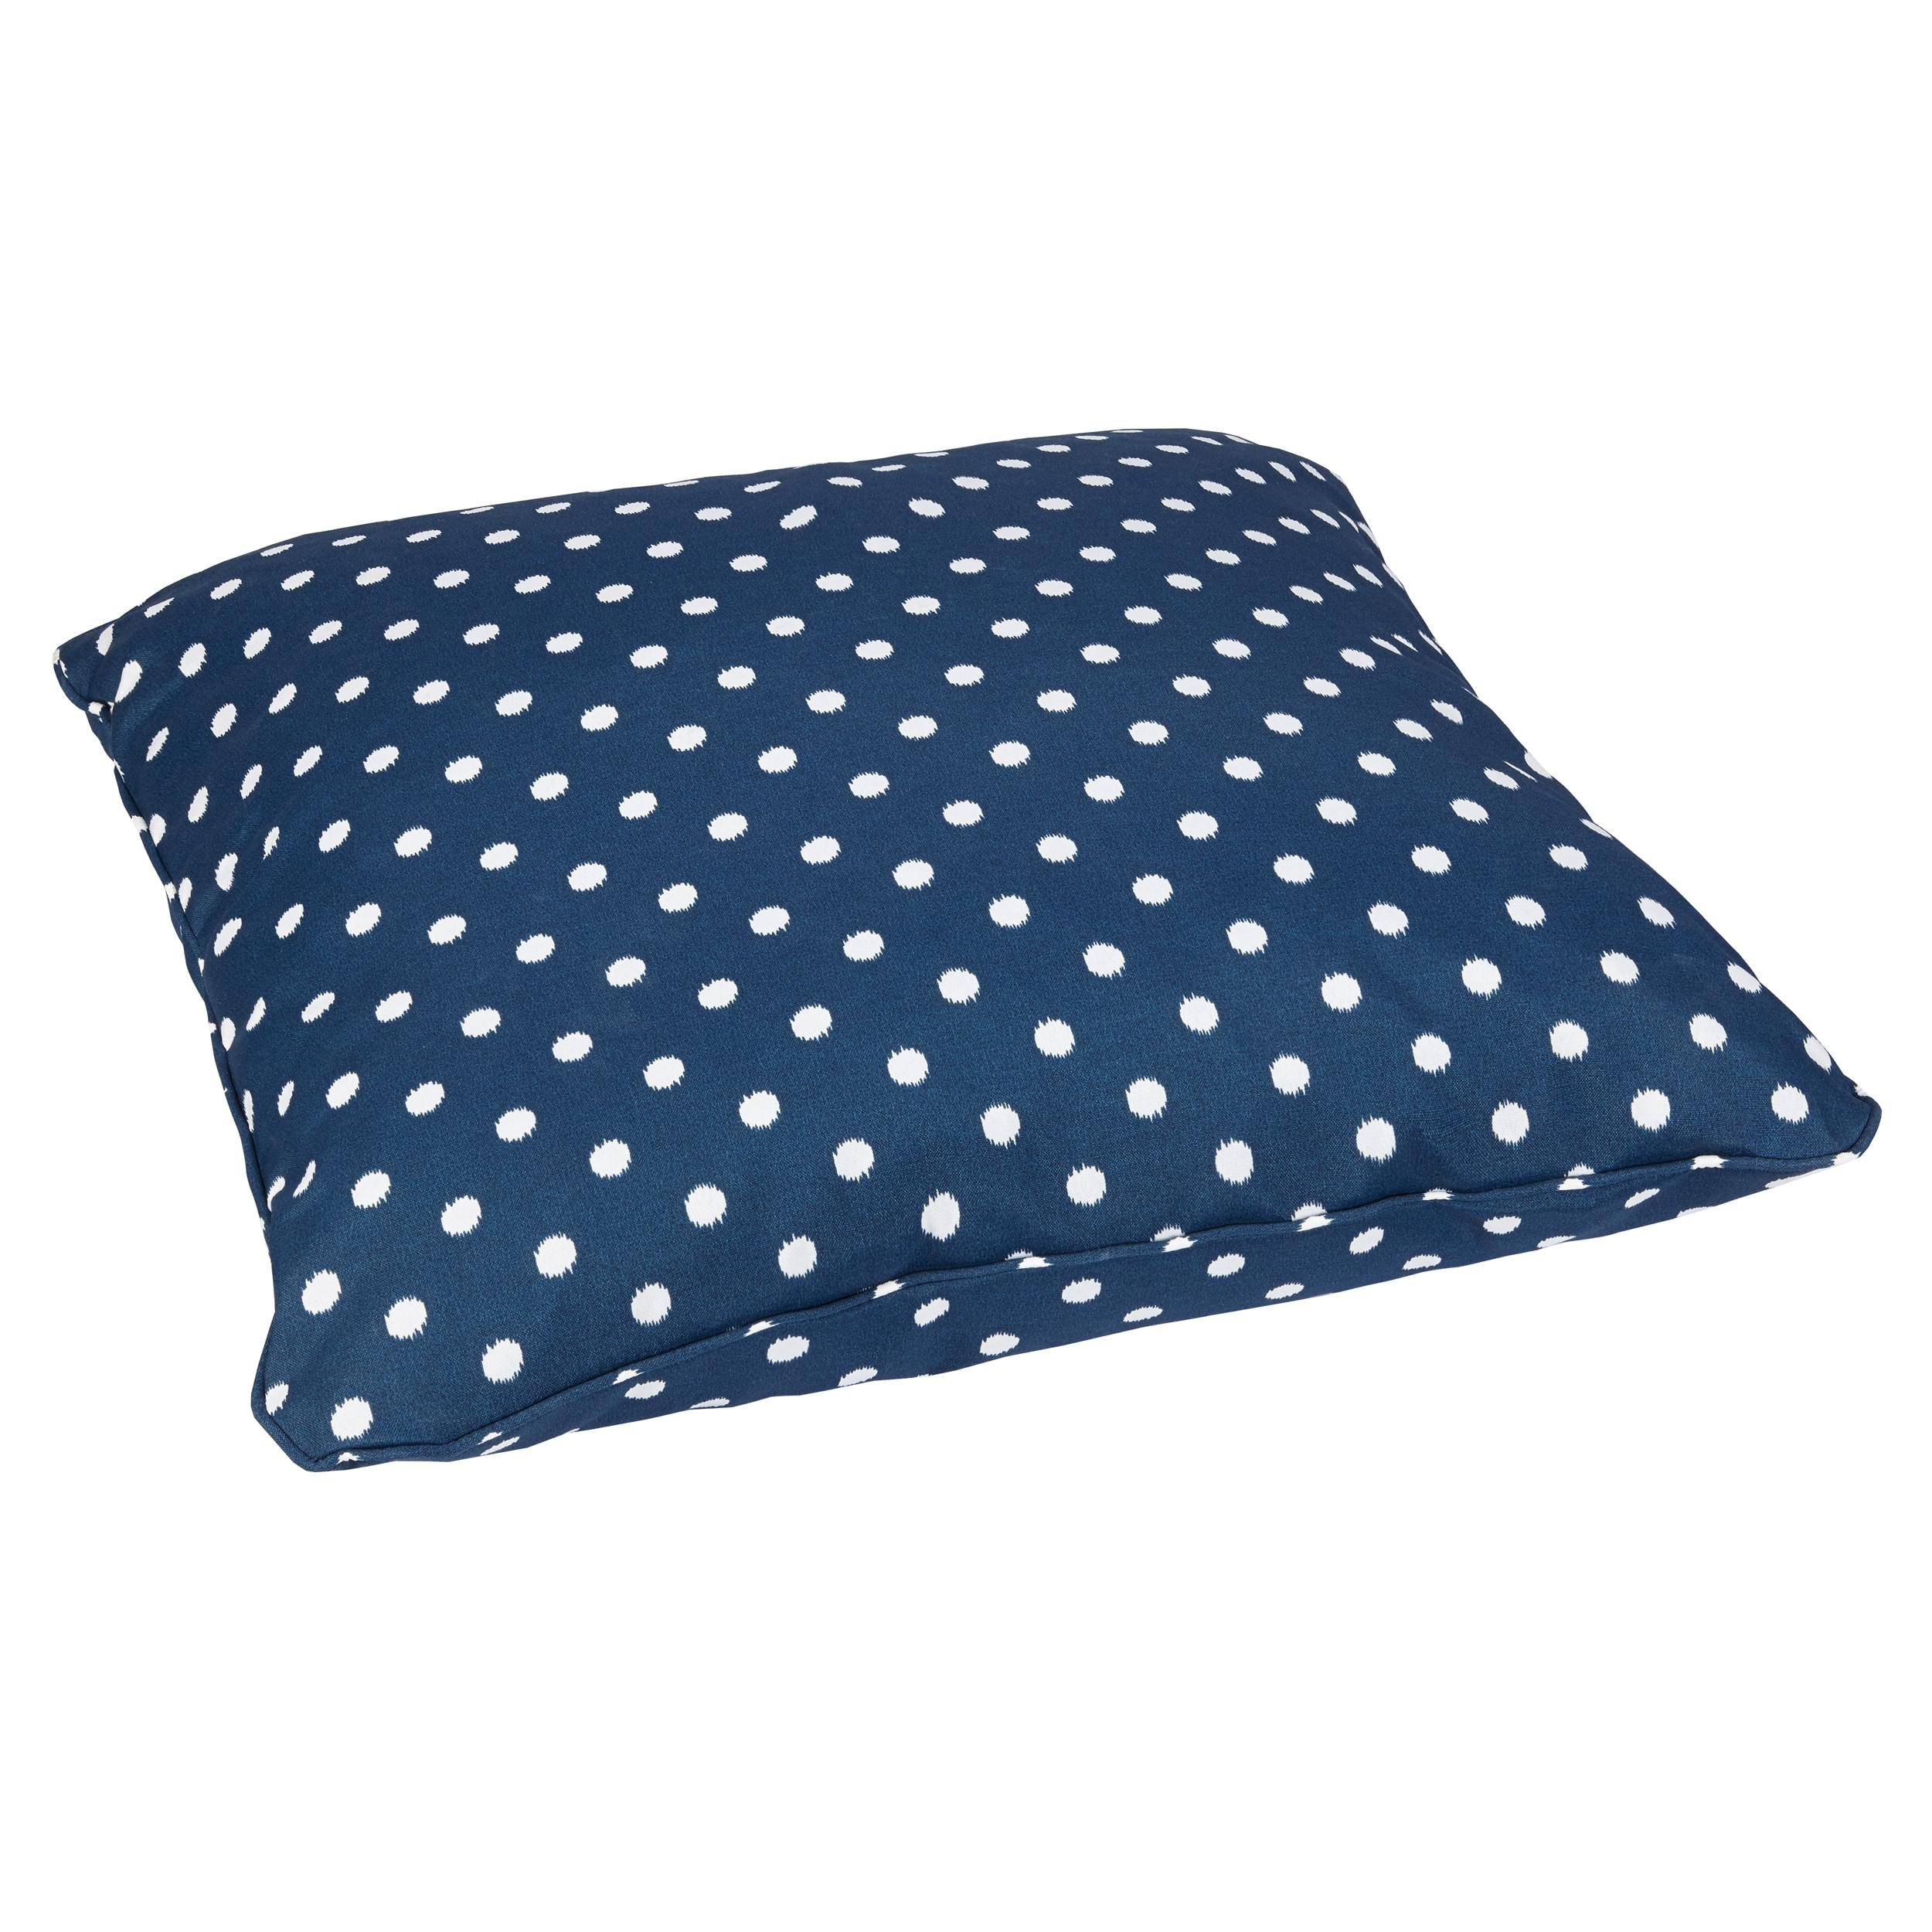 Large Outdoor Floor Pillows : Amazon.com : Mozaic Sabrina Corded Indoor/Outdoor Square Floor Pillow, 28-Inch, Navy Dots ...